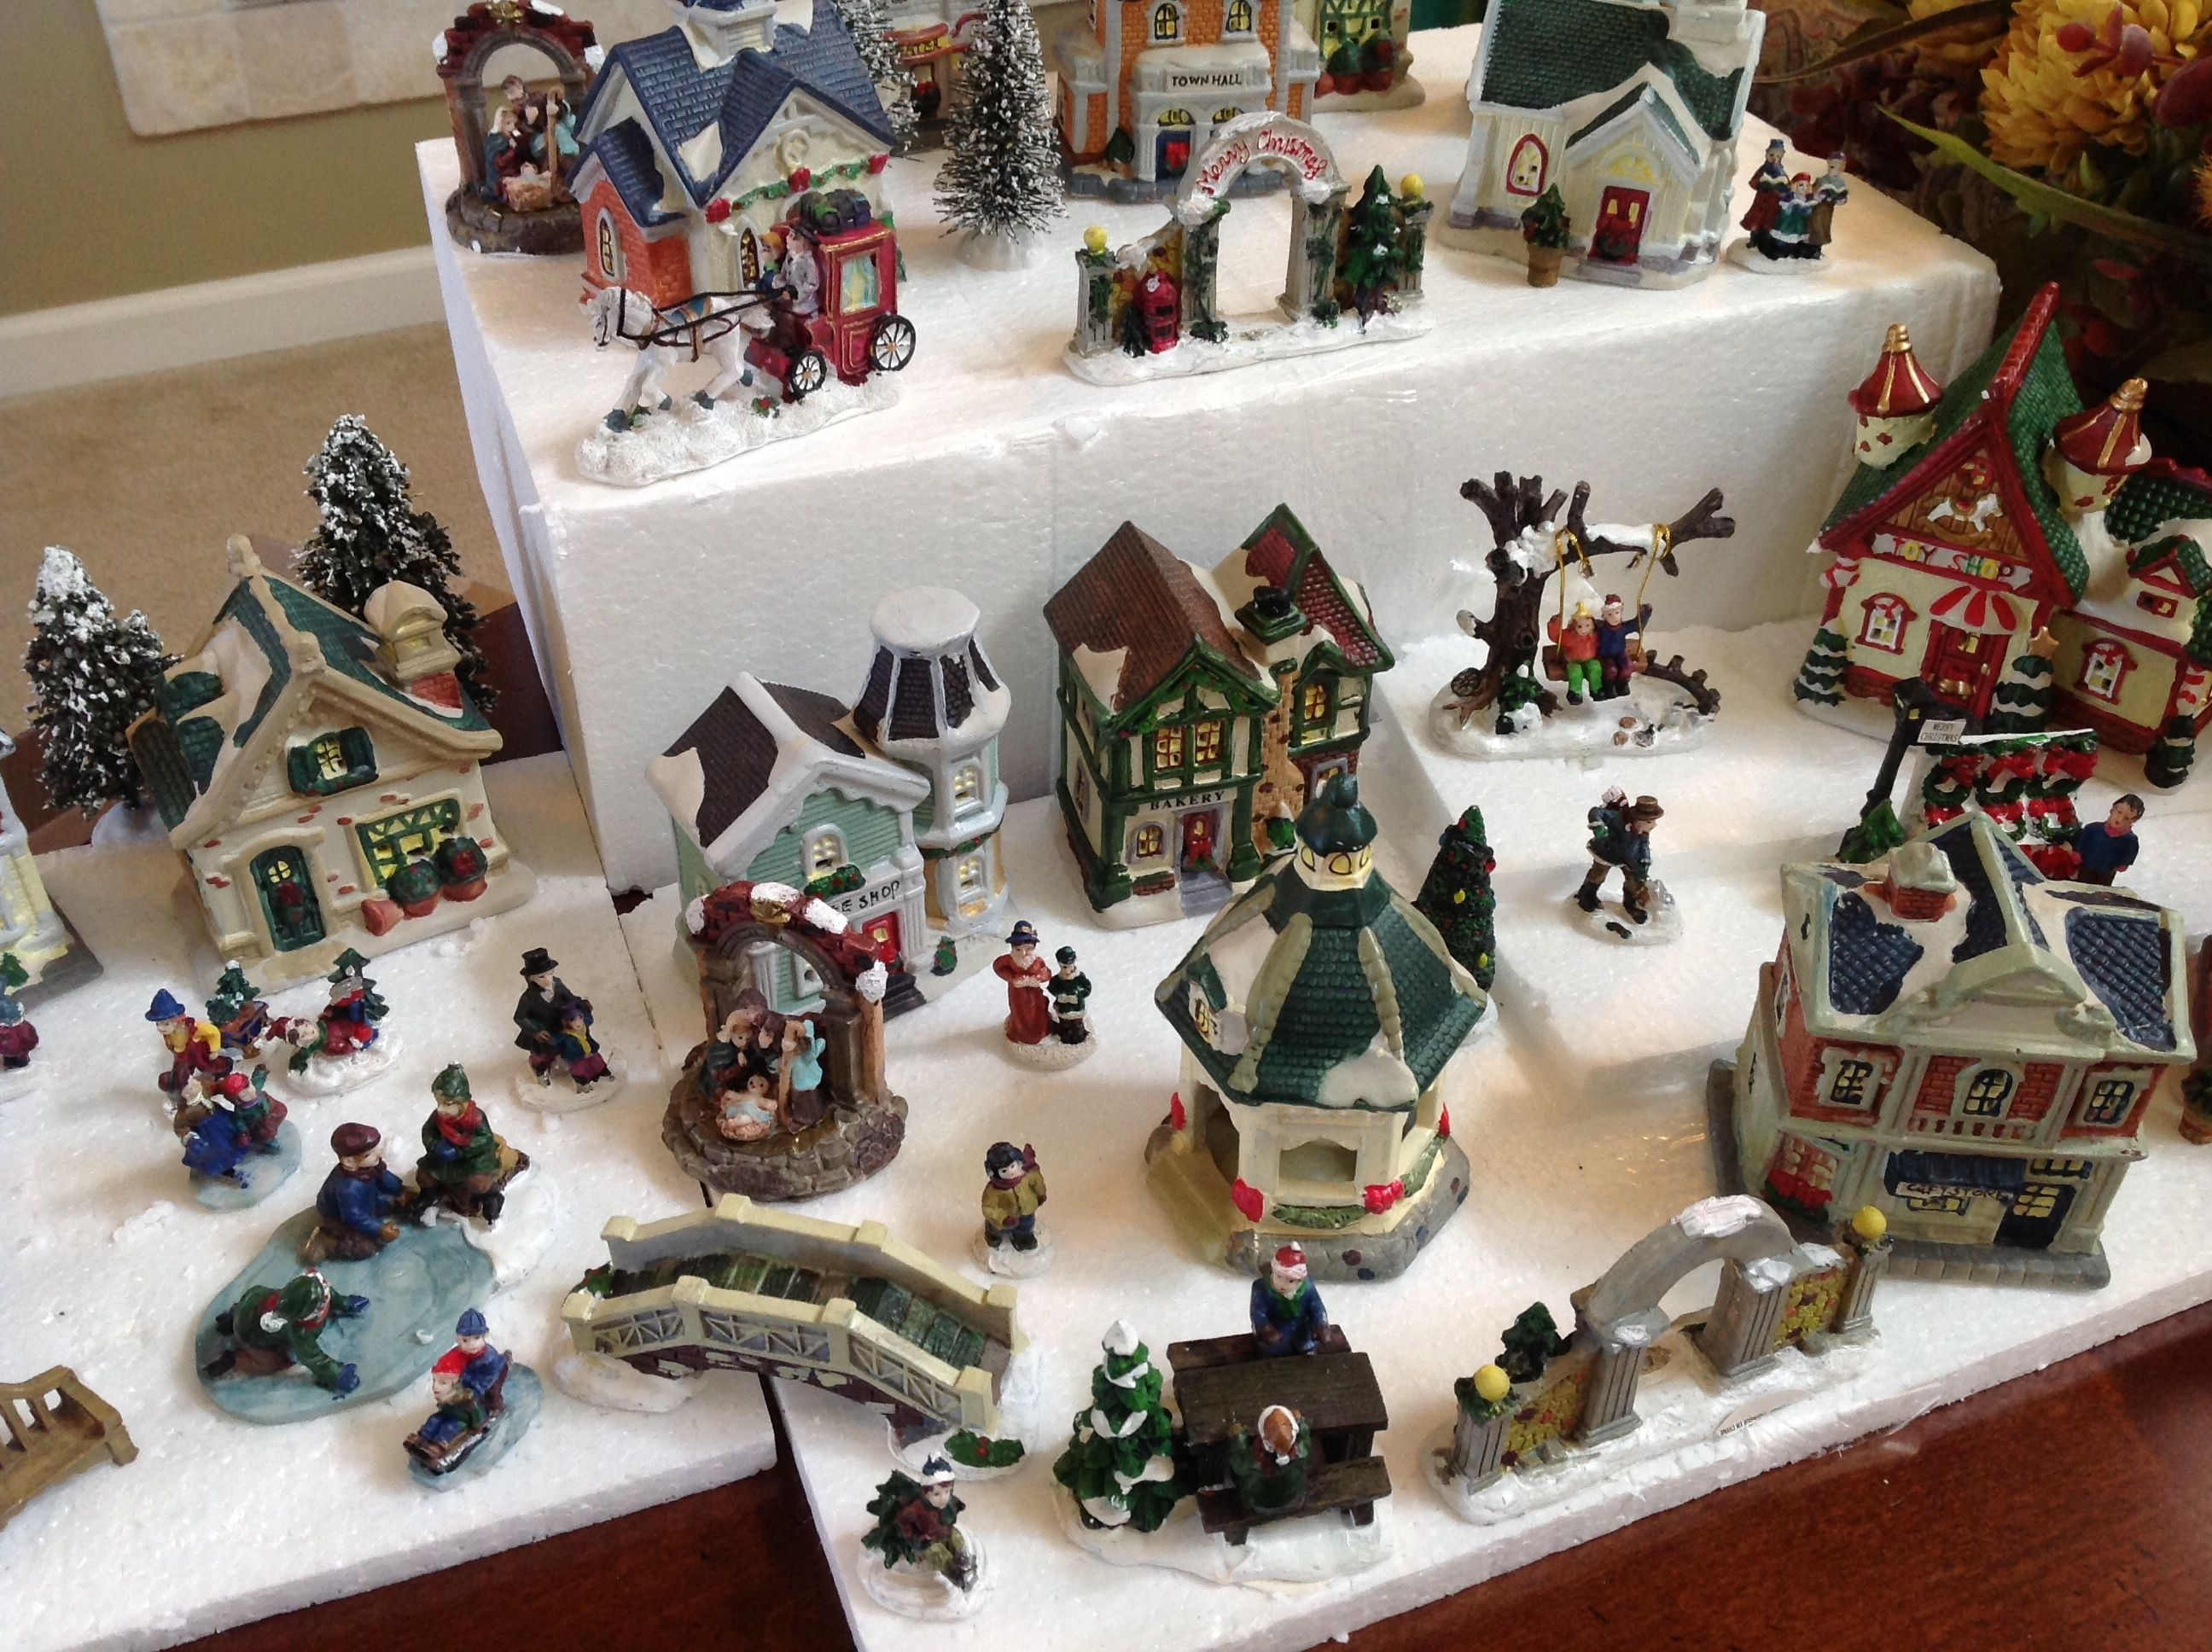 Cobblestone Corners Christmas Village 2020 Scale Cobblestone Corners Christmas Village Collection Arrangement